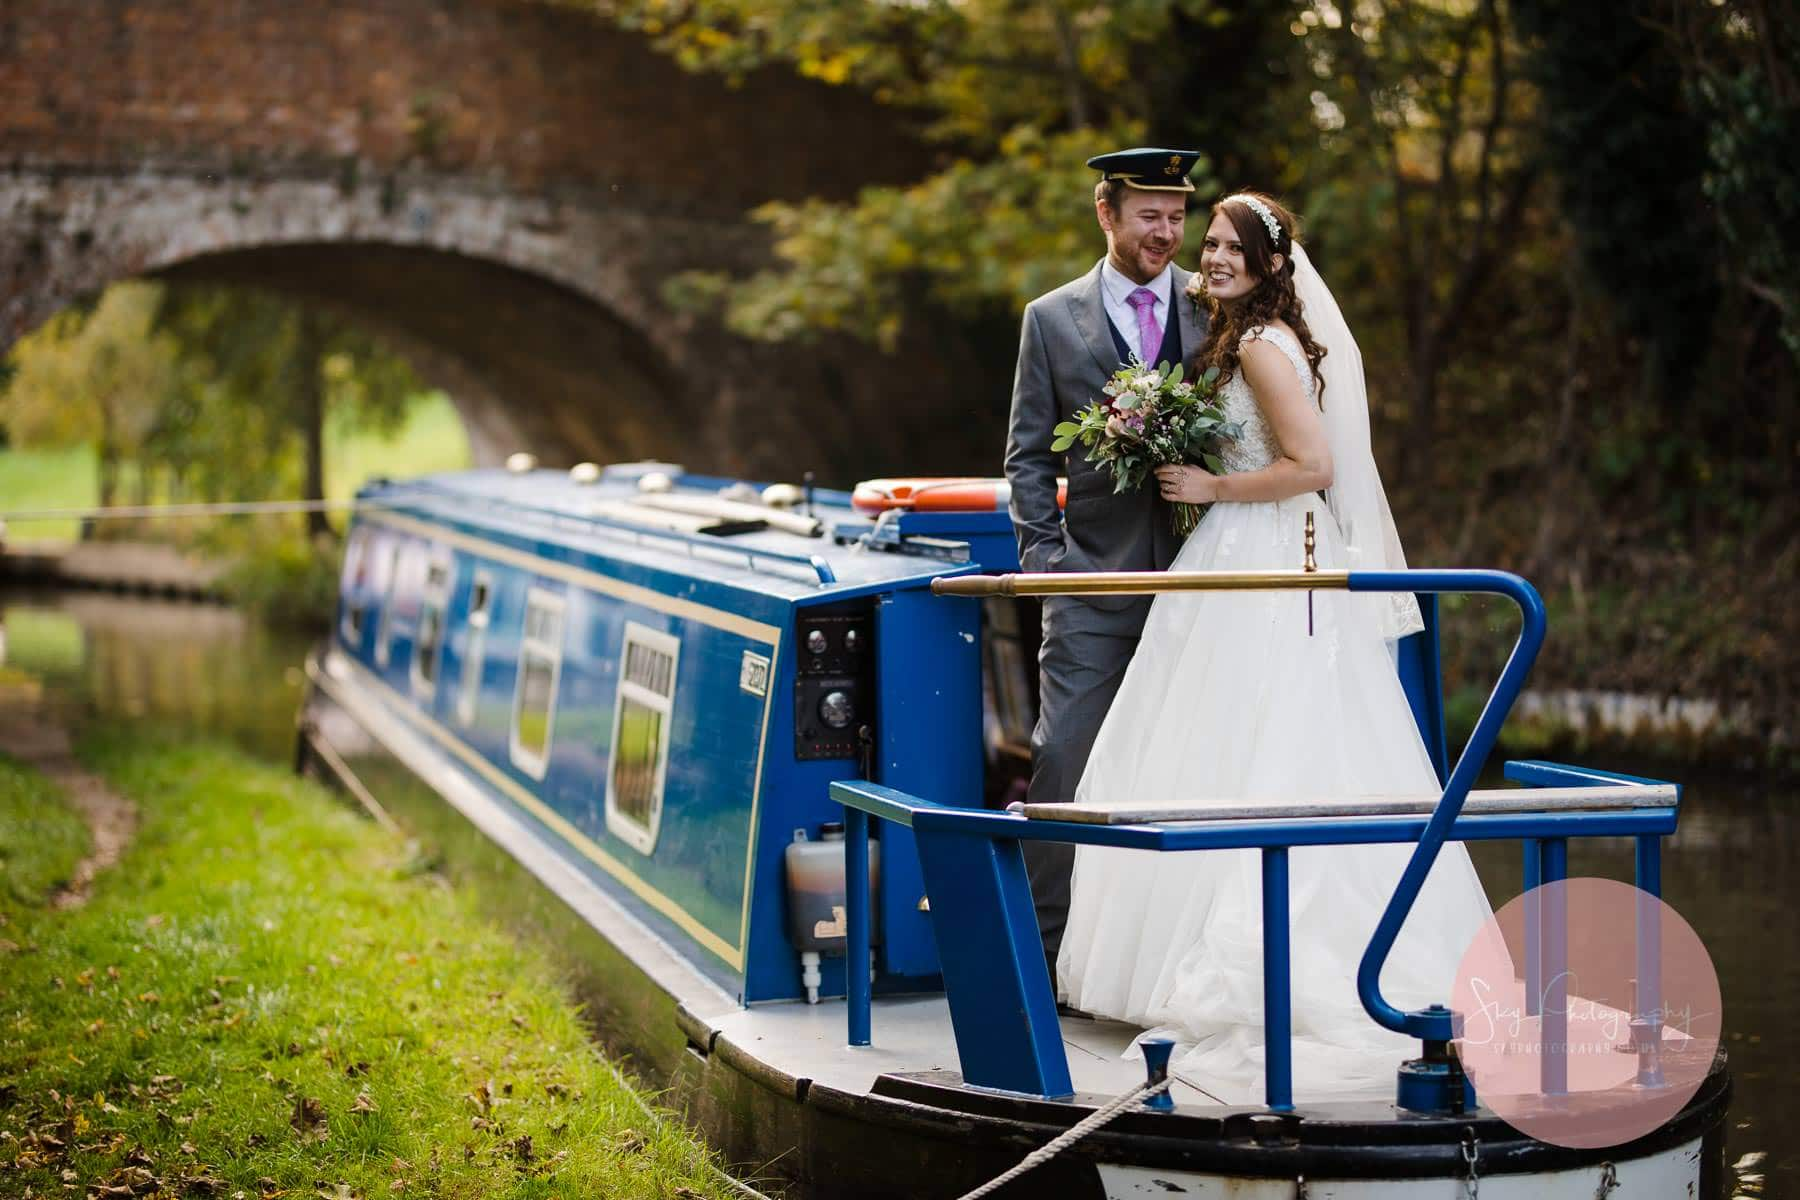 bride and groom get a lift on a canal boat a gret wedding moment